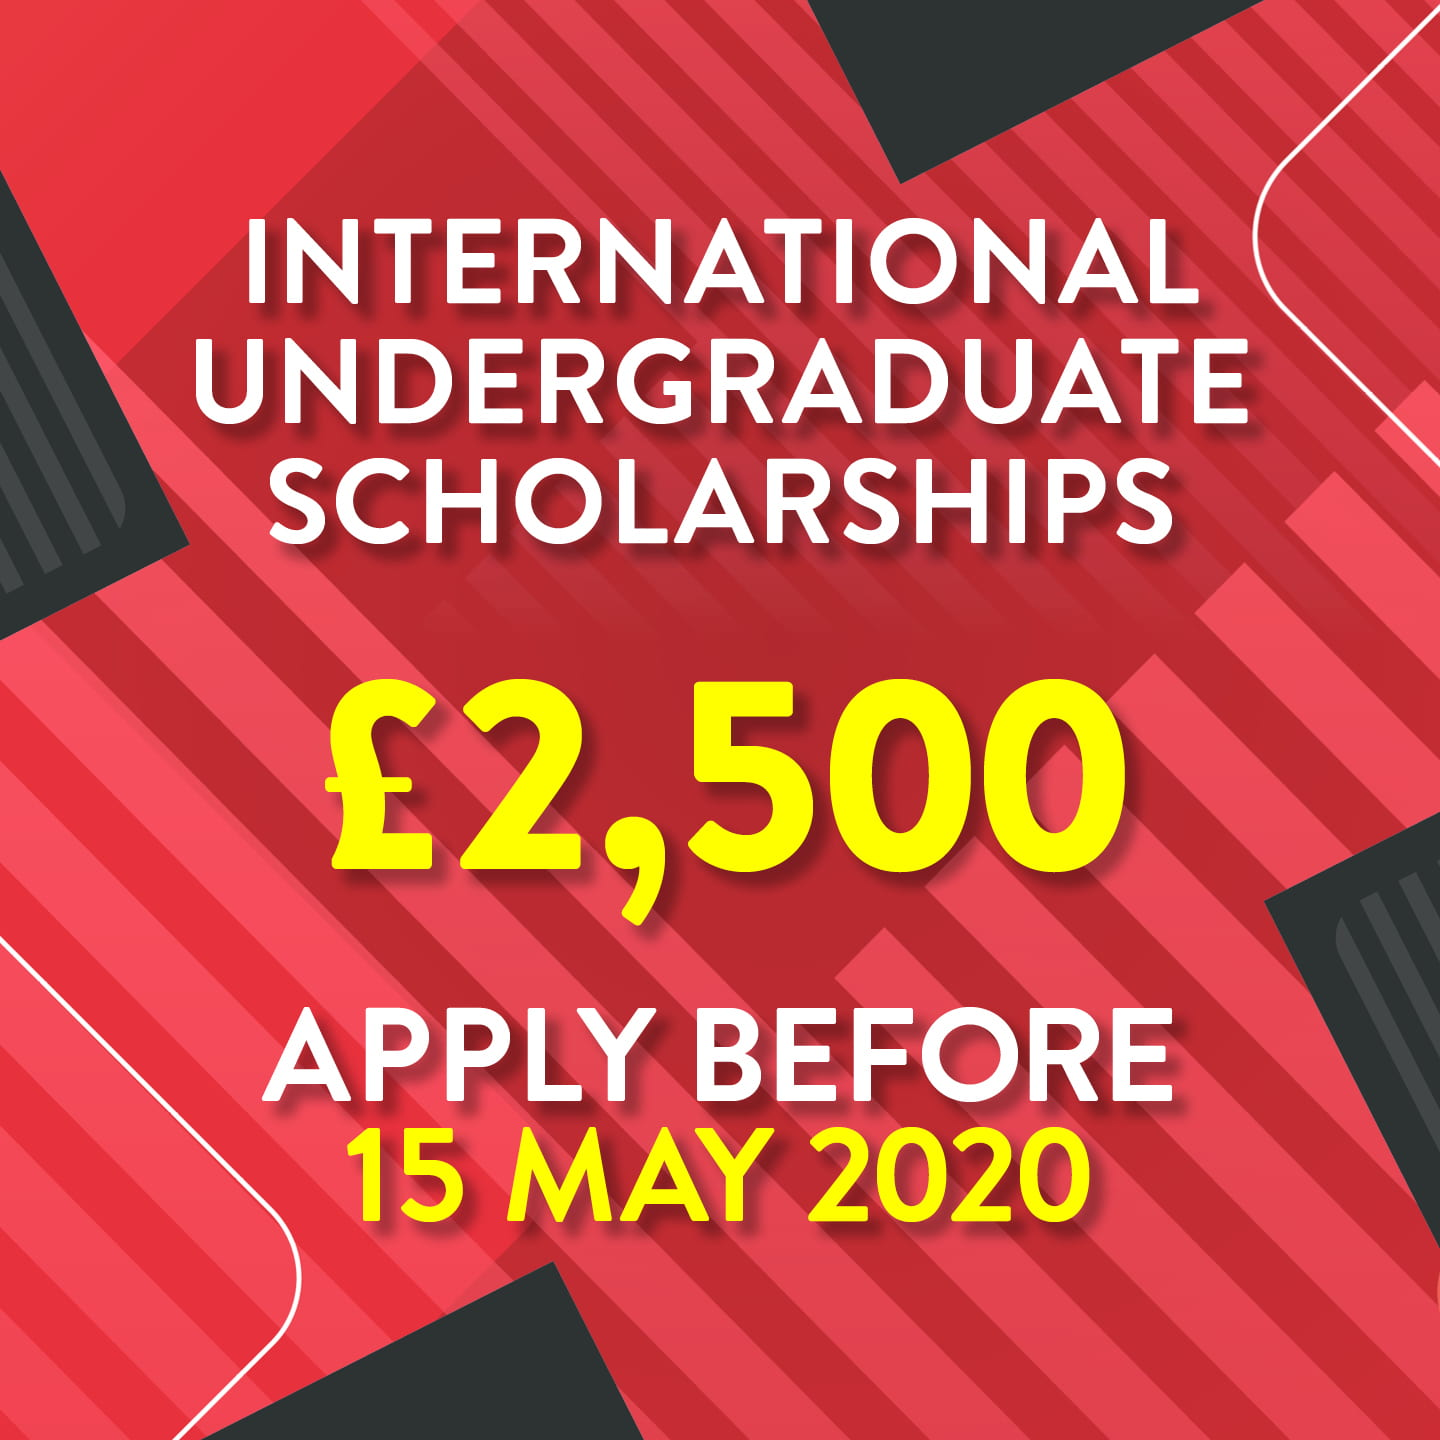 image showing scholarship value and the deadline date